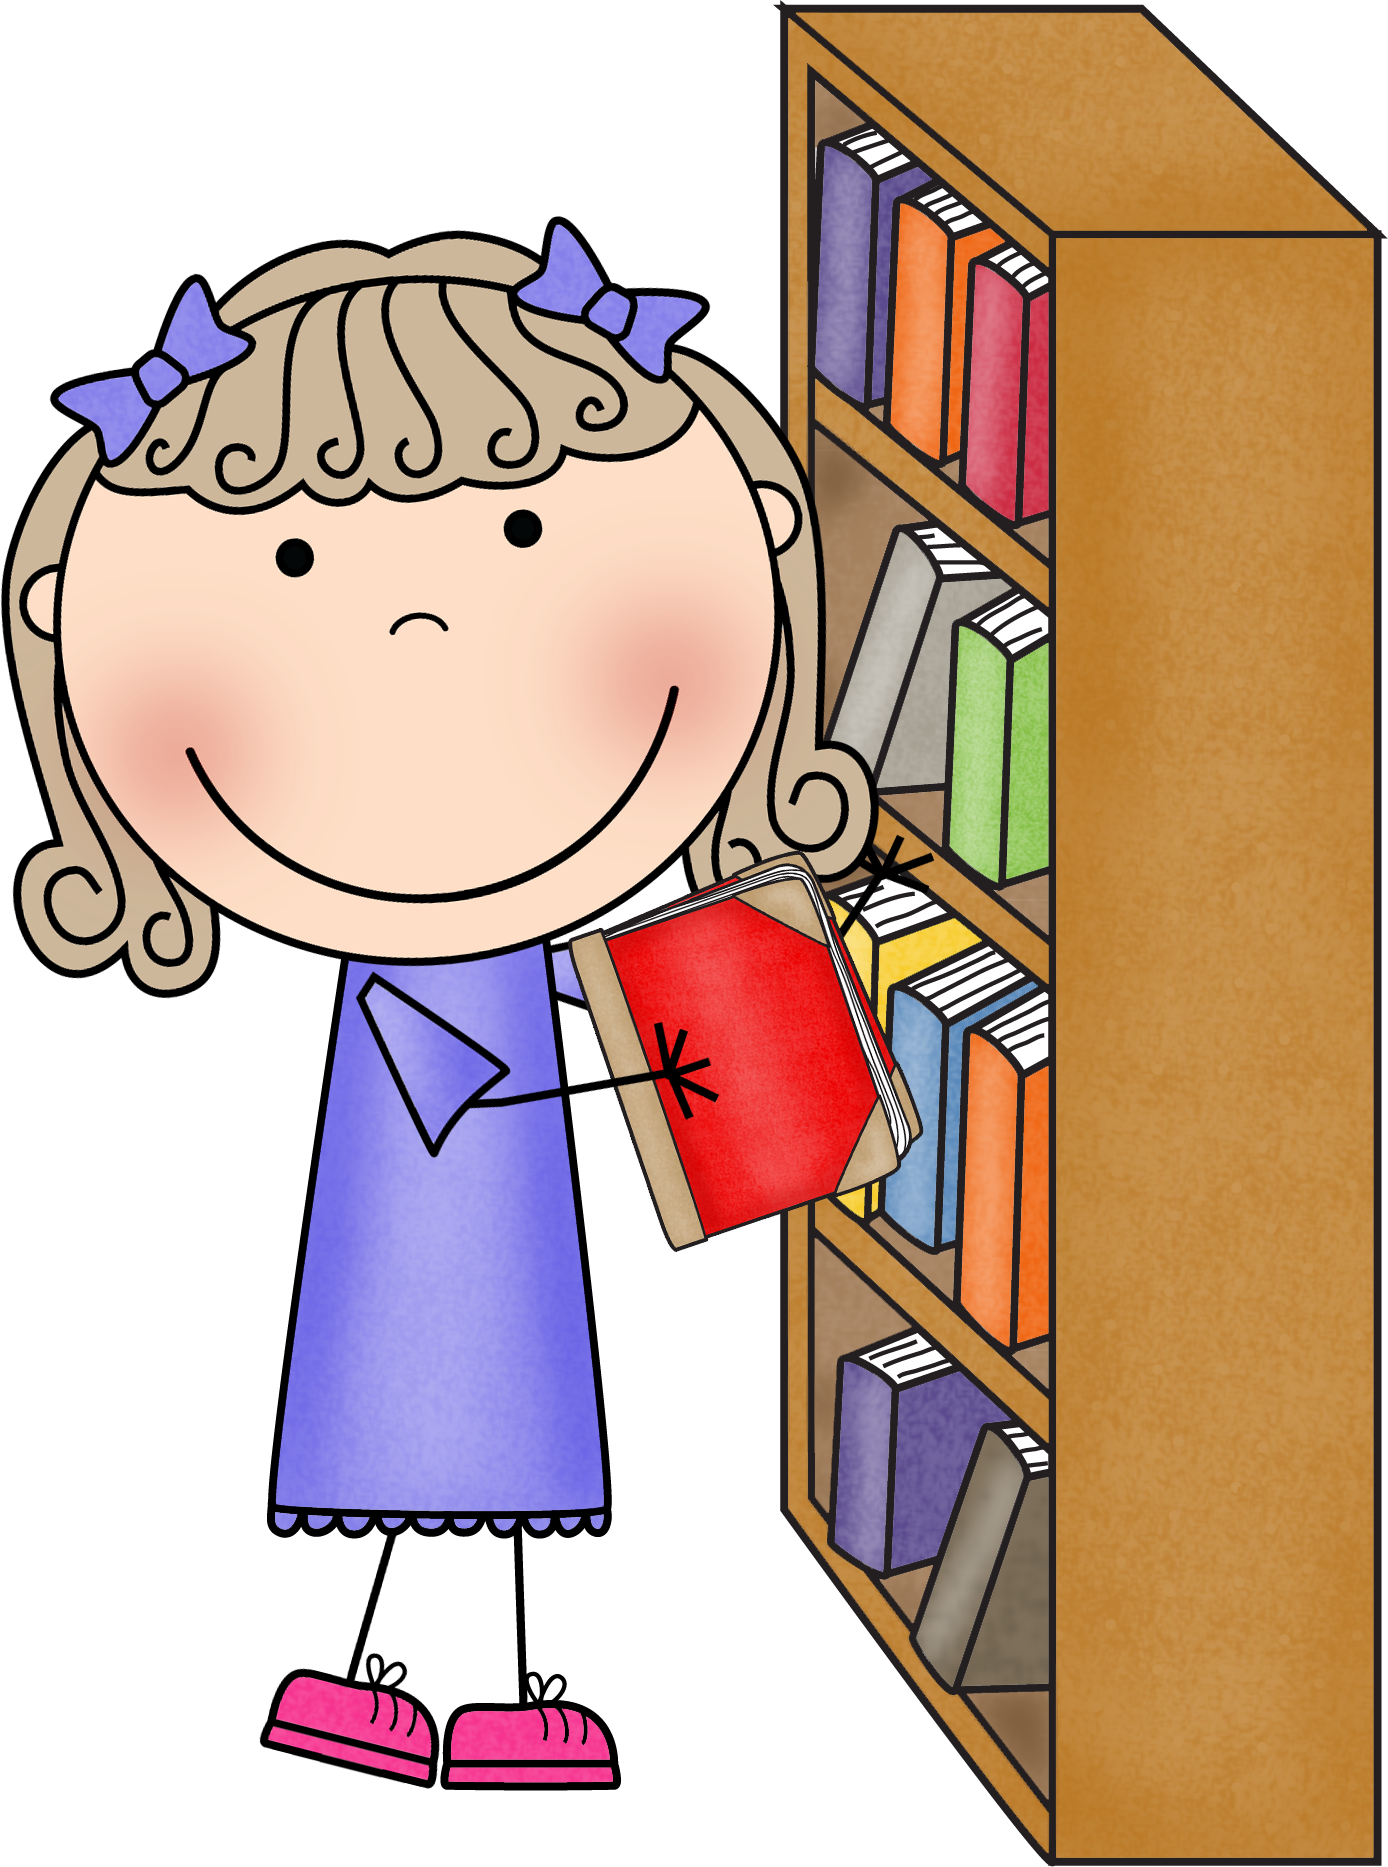 Organized clipart library, Organized library Transparent FREE for ...